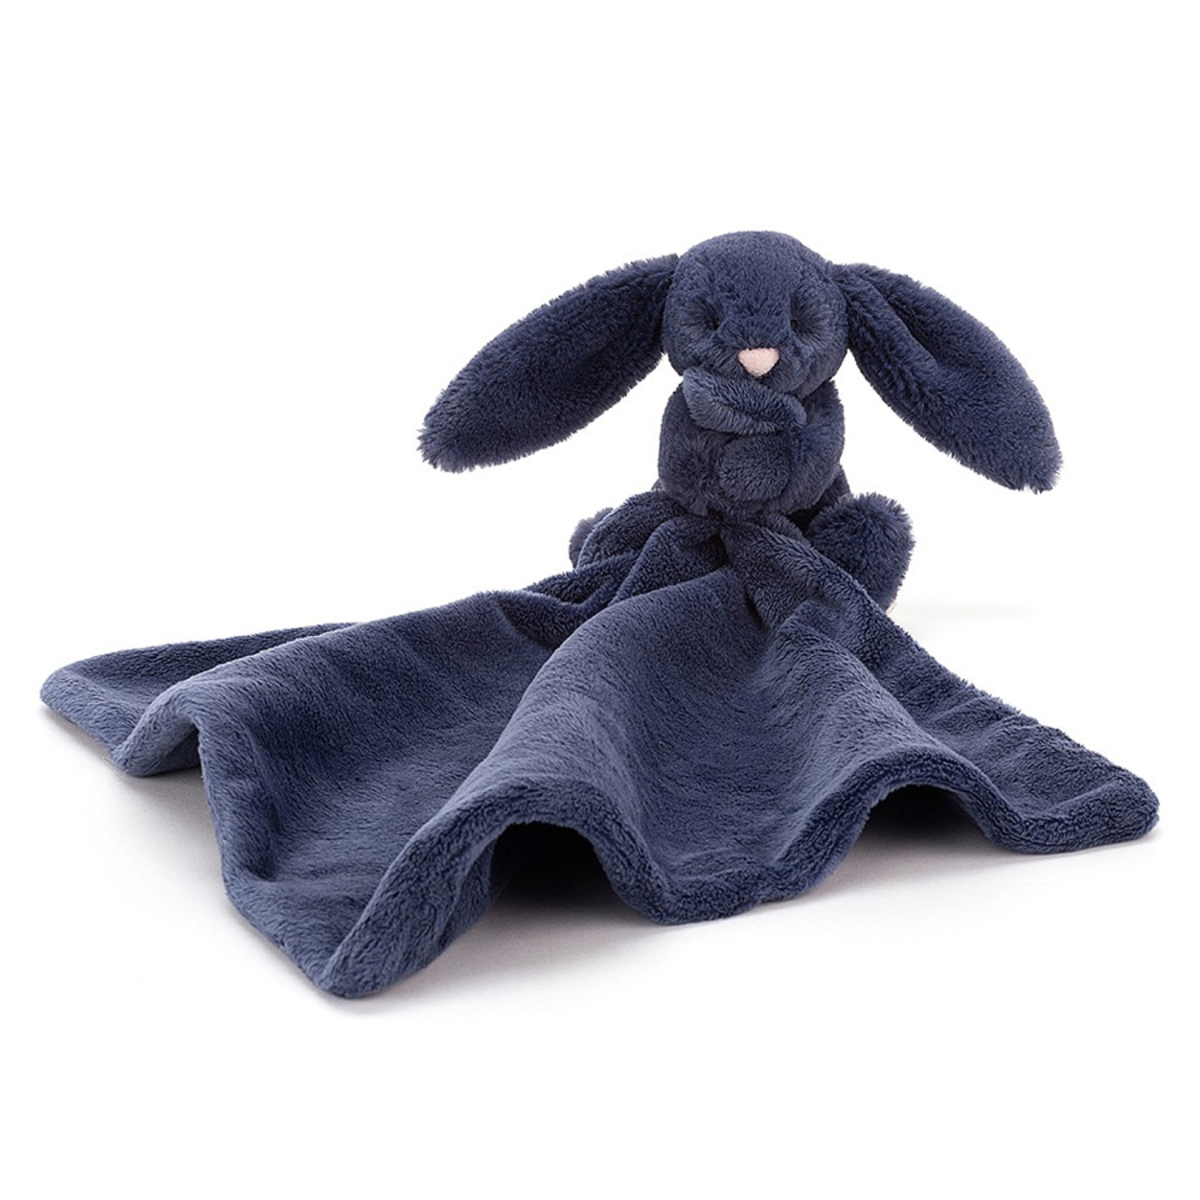 Doudou Bashful Navy Bunny Soother Bashful Navy Bunny Soother